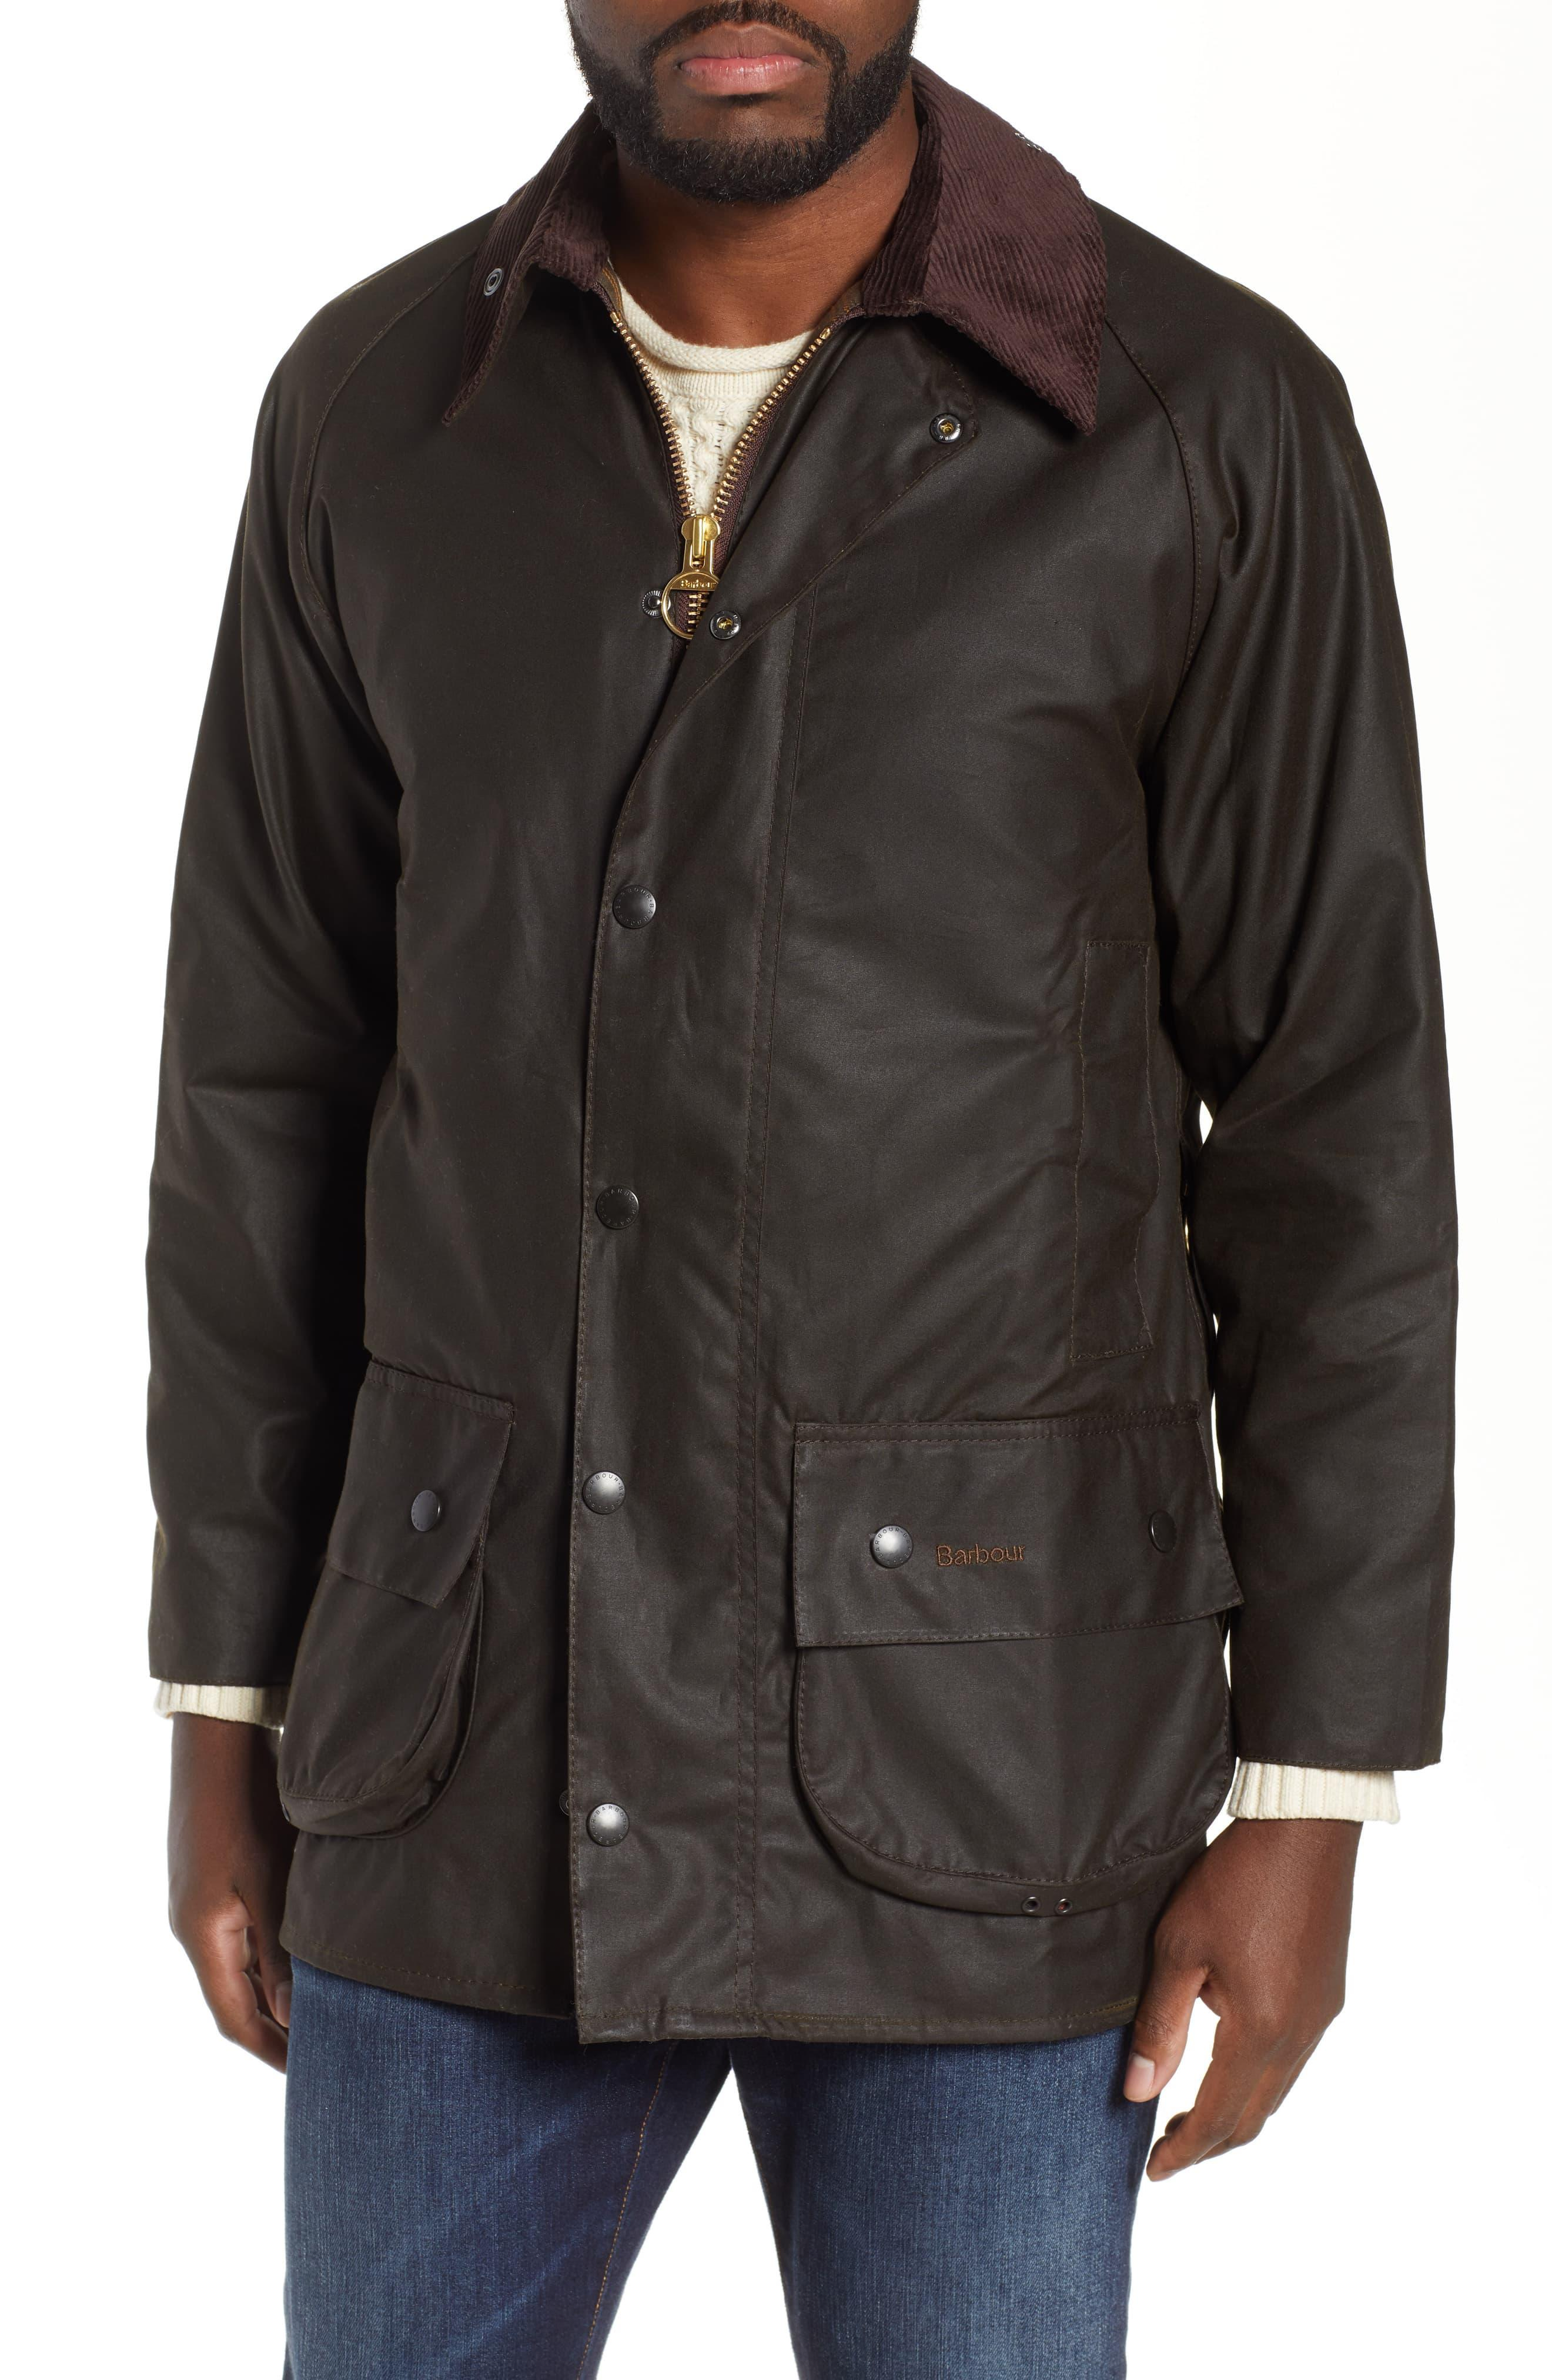 20412a8df6dd Barbour - Green 'classic Beaufort' Relaxed Fit Waxed Cotton Jacket for Men  - Lyst. View fullscreen